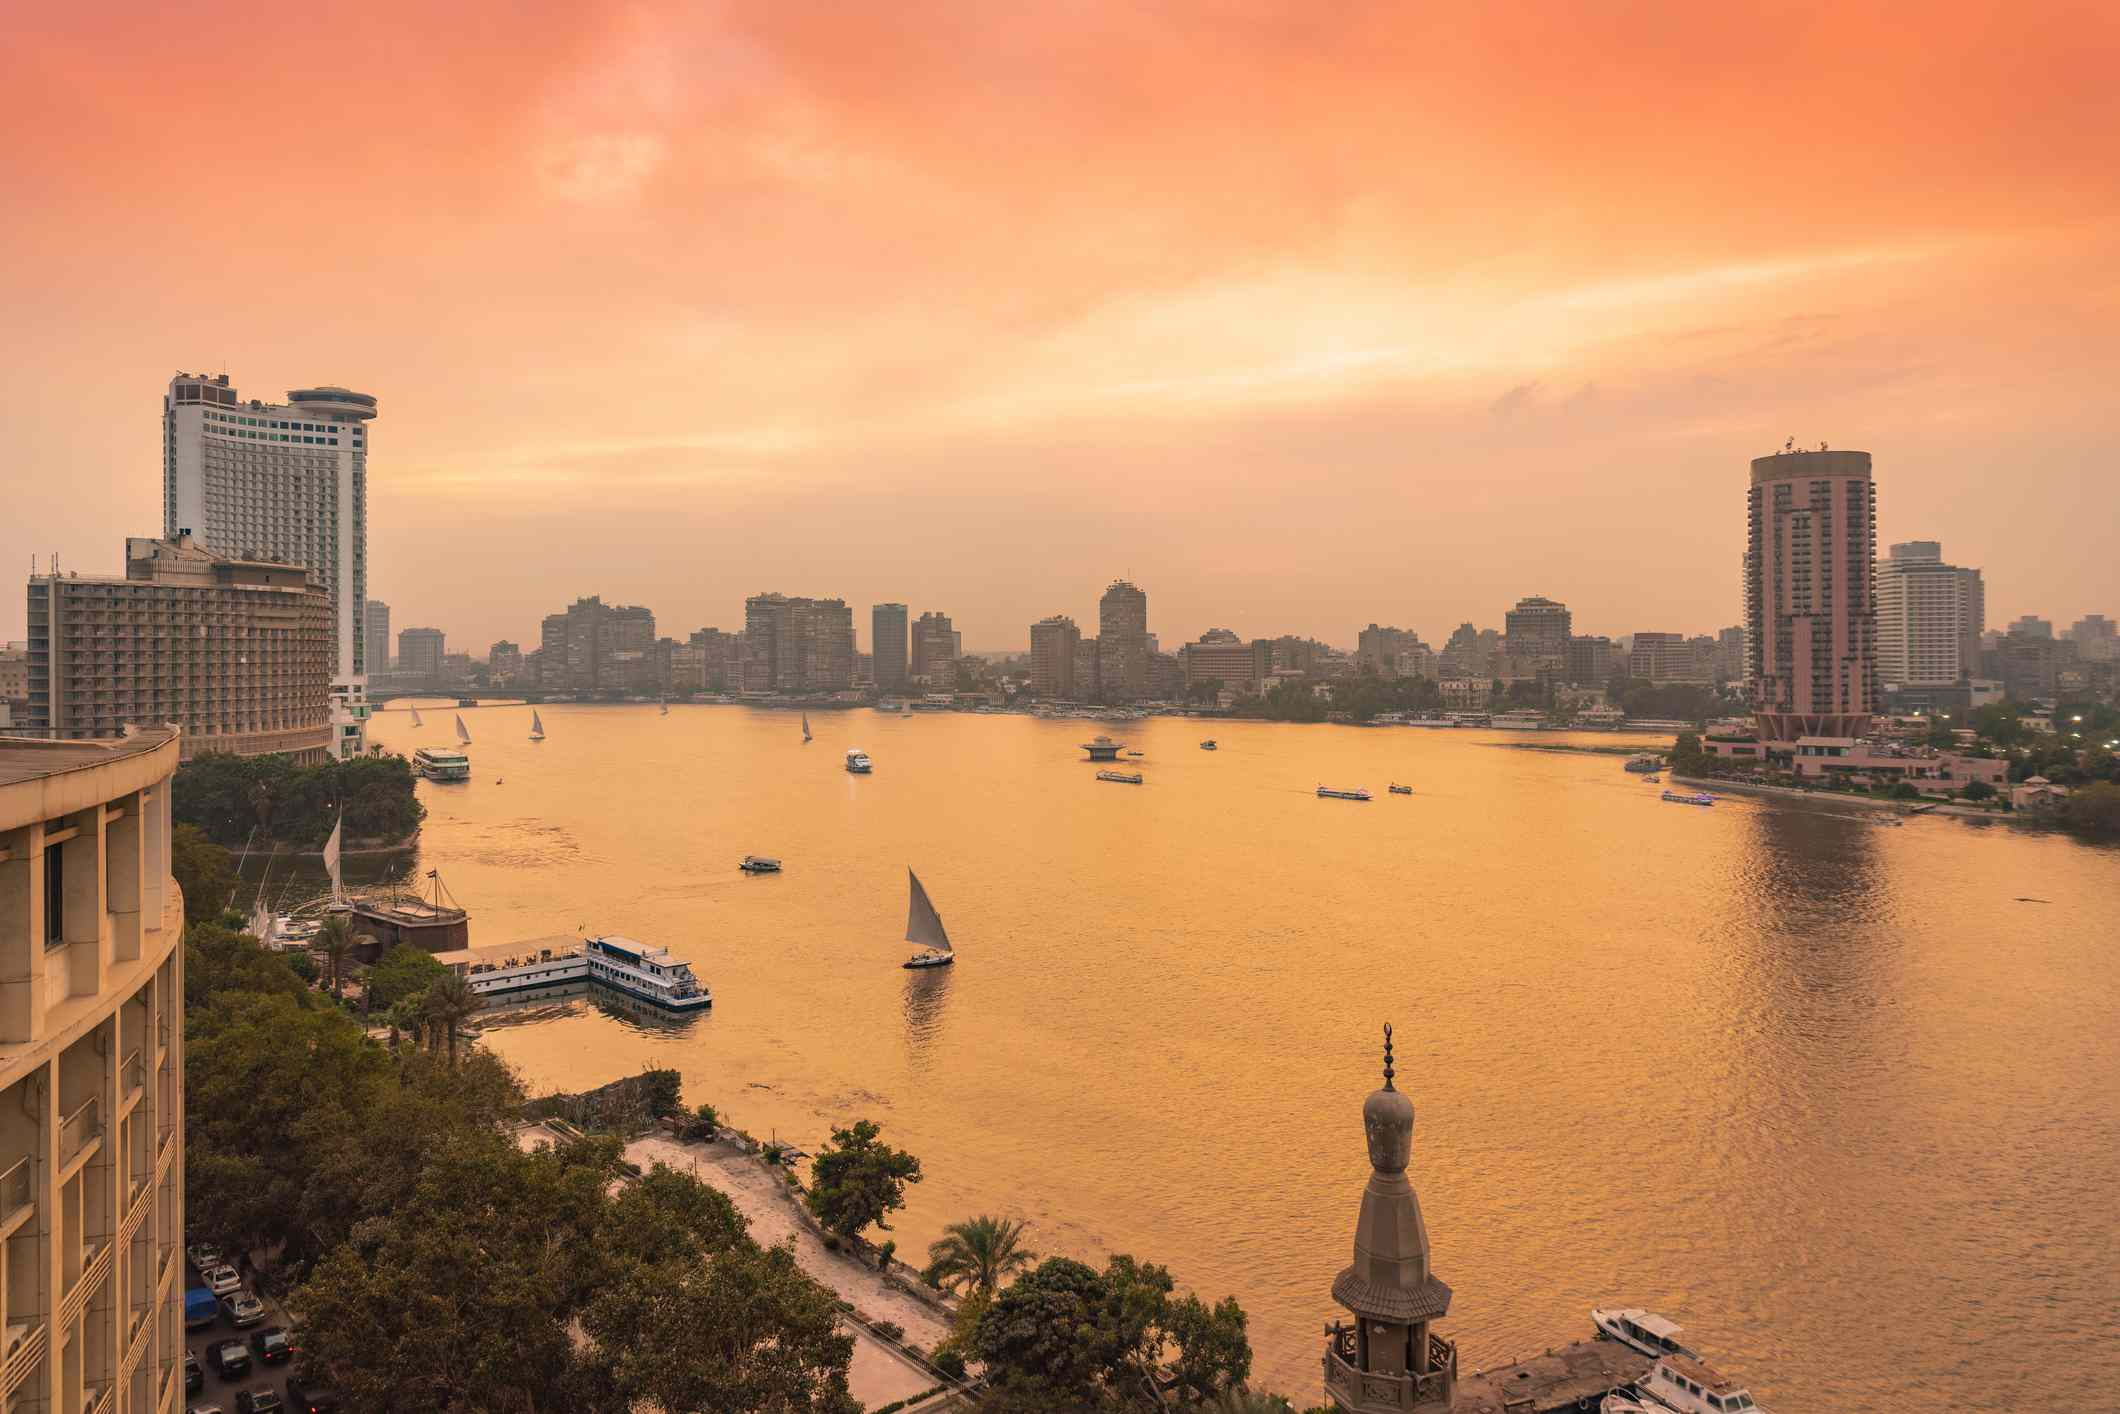 Egypt, Cairo, Nile with skyline and downtown area from Garden City at sunset